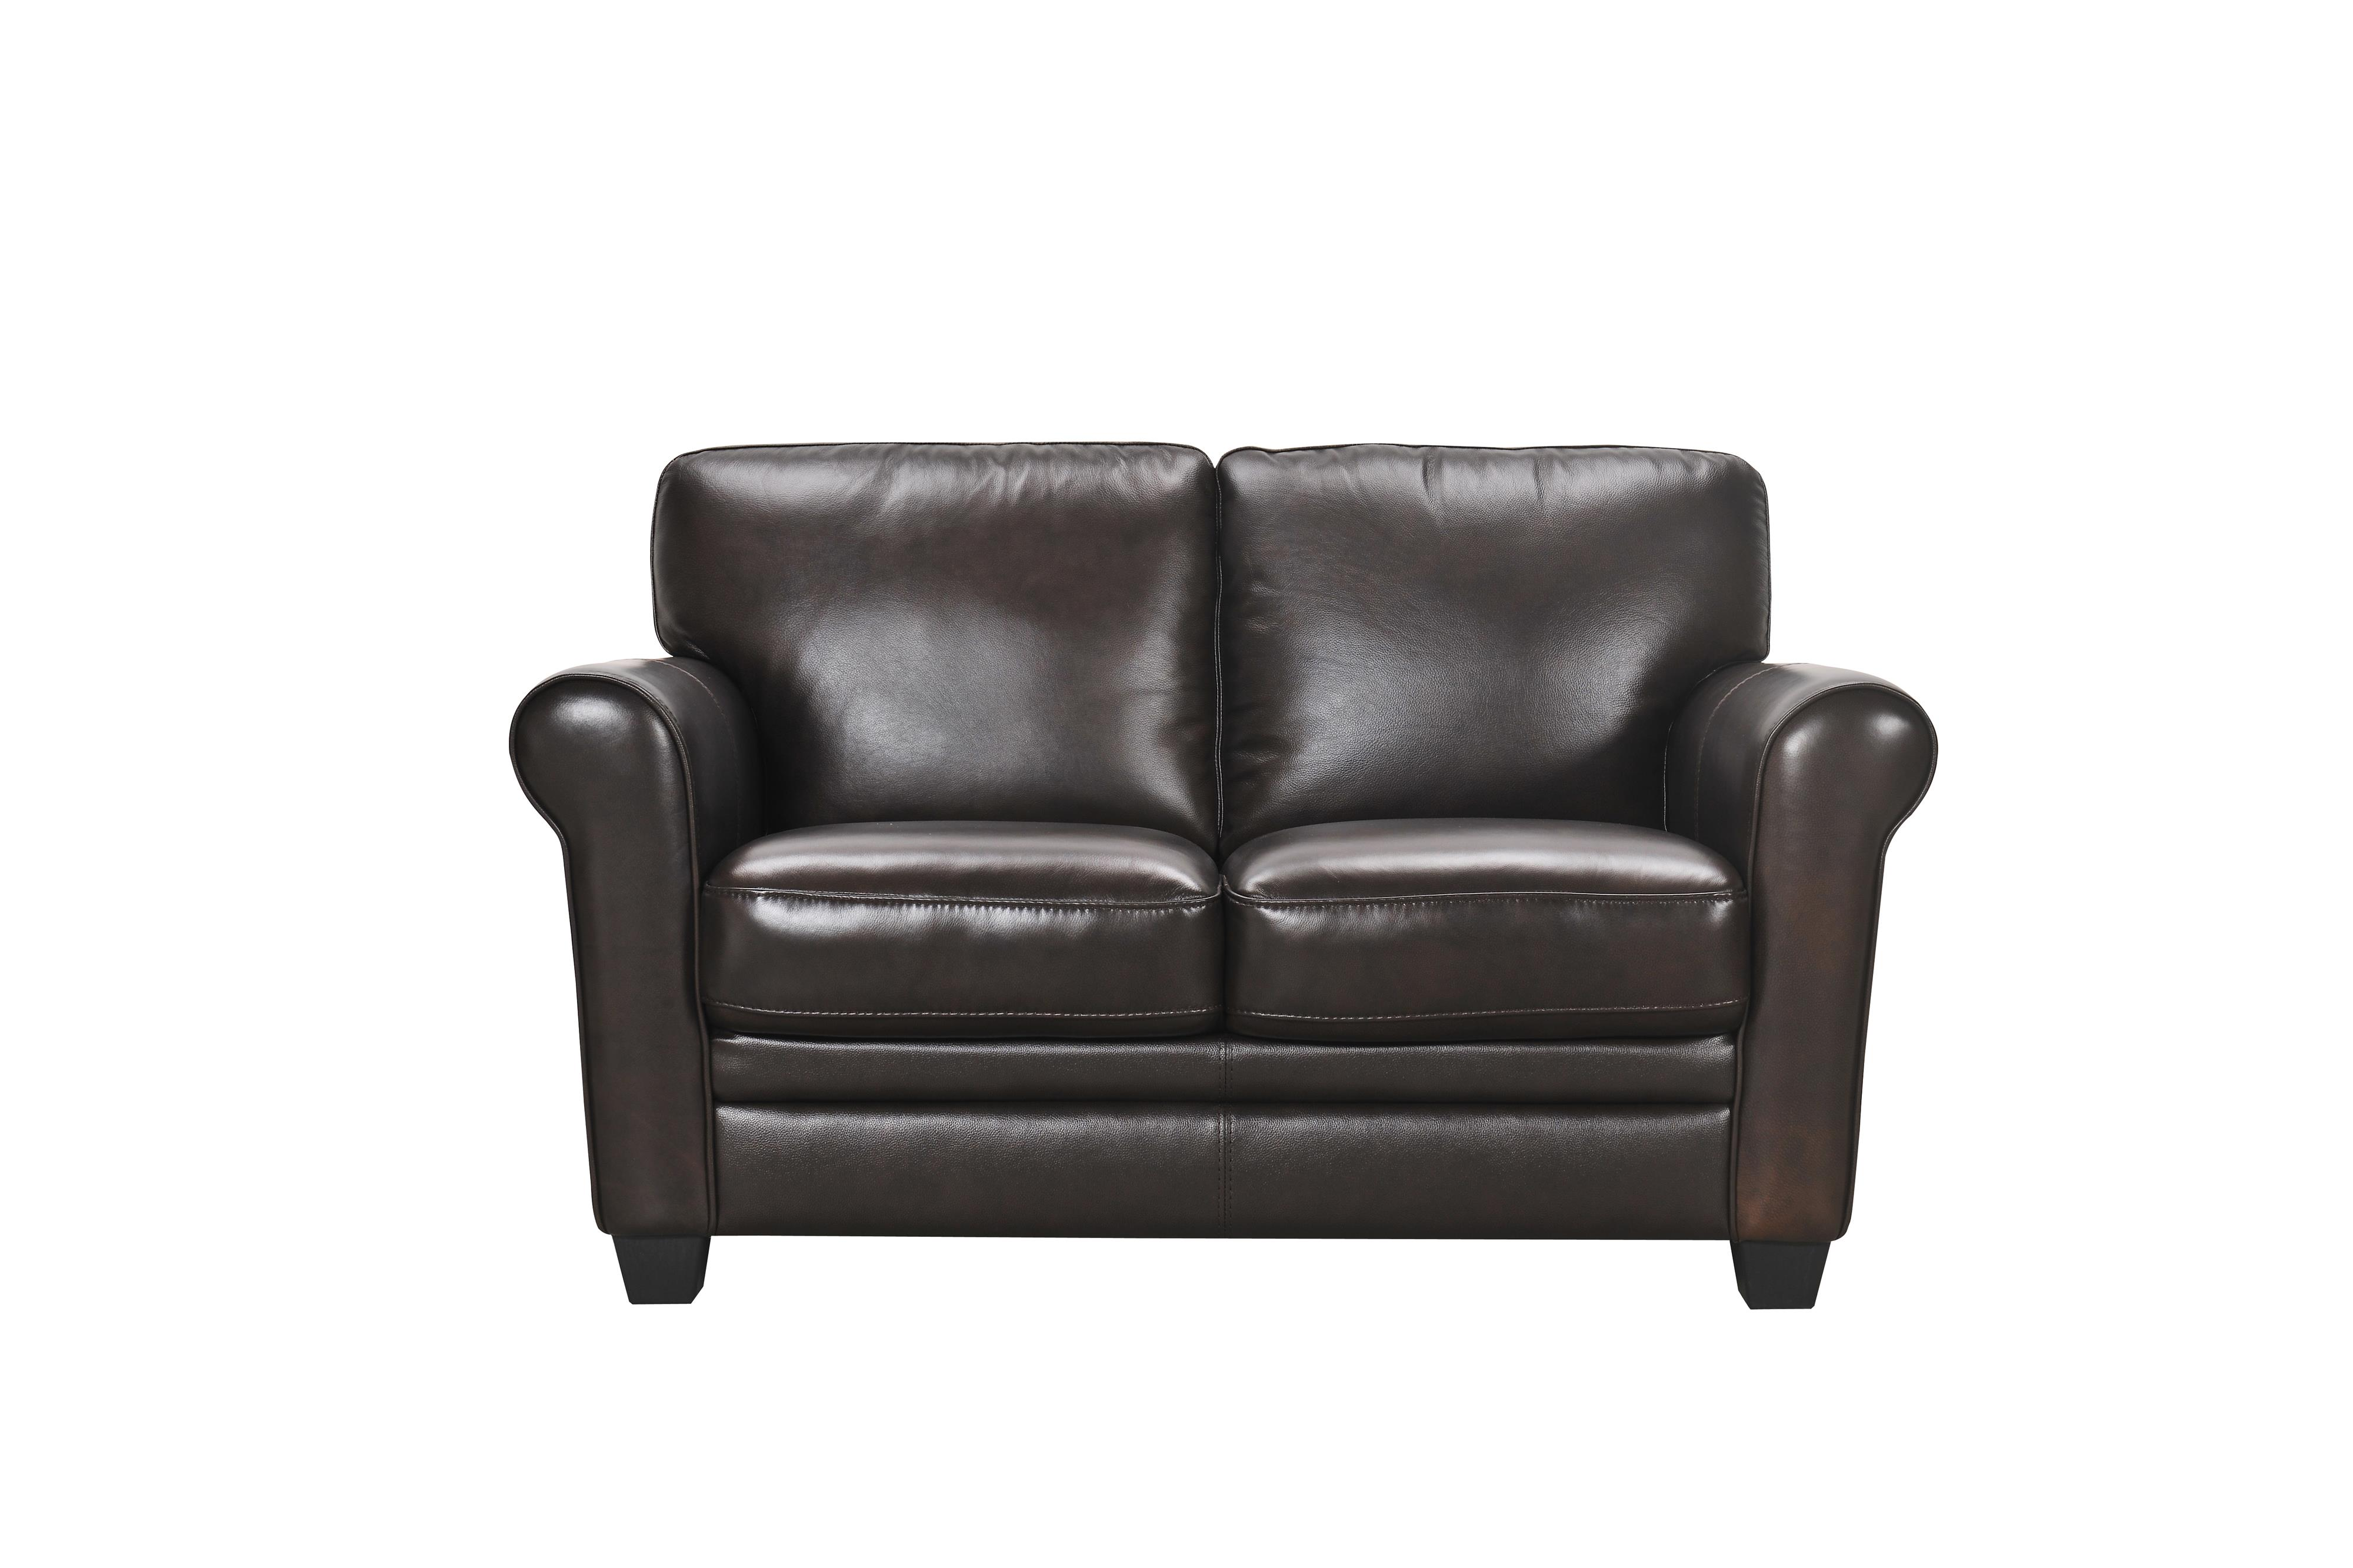 violino leather sofa stockists vacuum cleaning 30960 2p loveseat with rolled arms